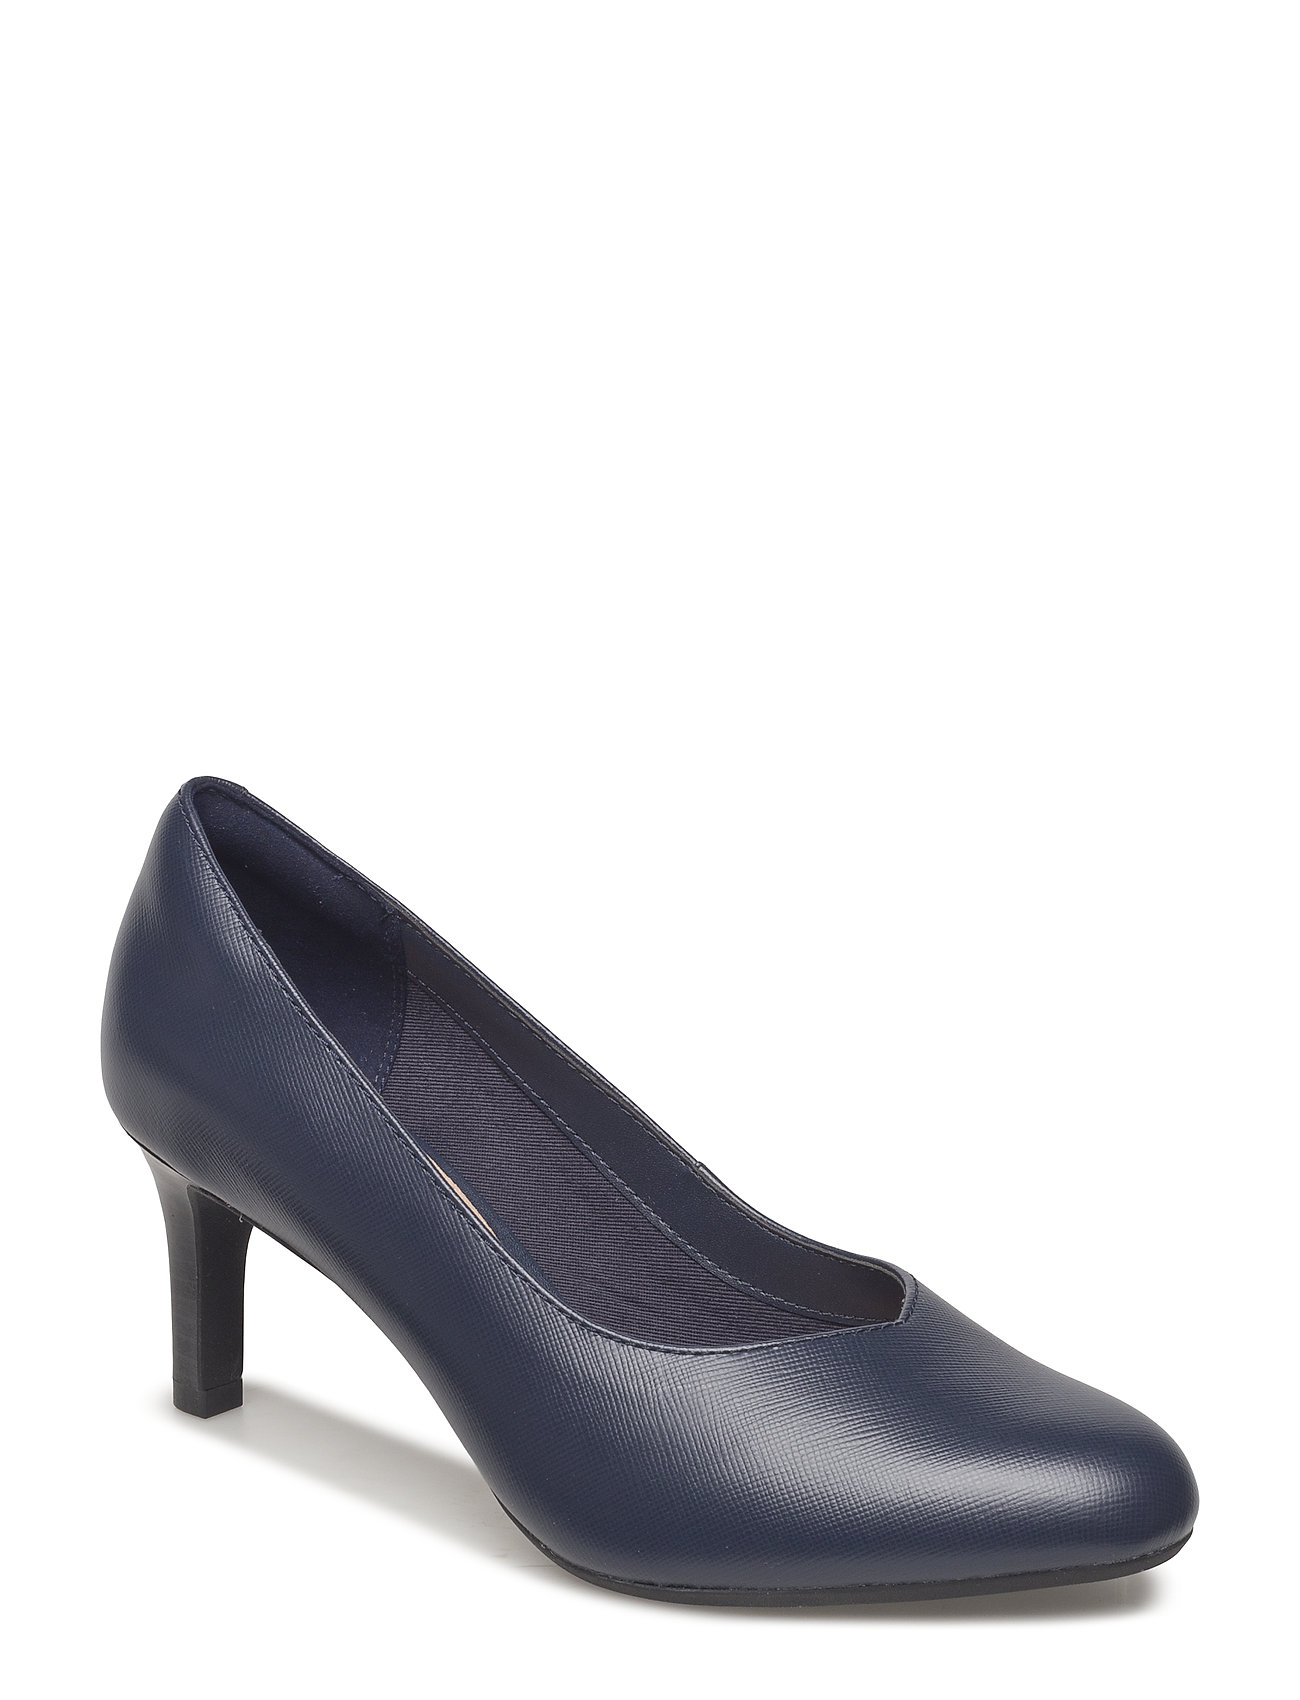 b512564df21 Dancer Nolin (Navy Leather) (53.97 €) - Clarks -